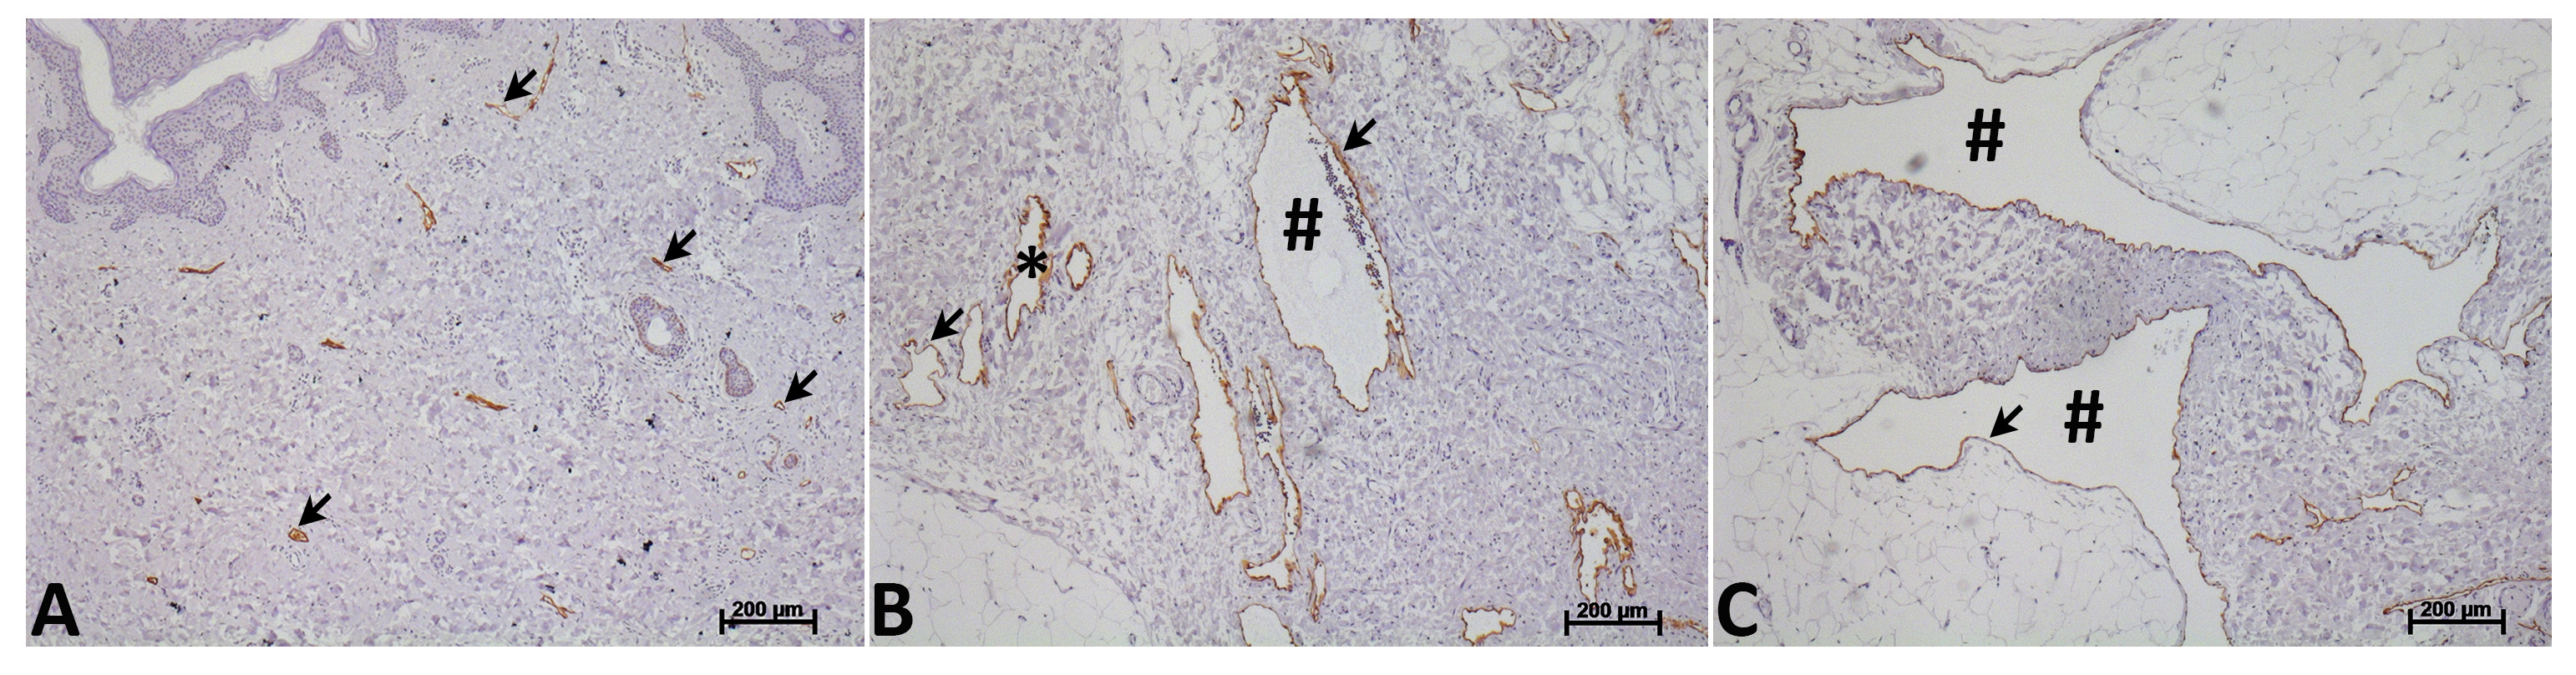 Isolation Of Human Lymphatic Endothelial Cells By Multi Parameter